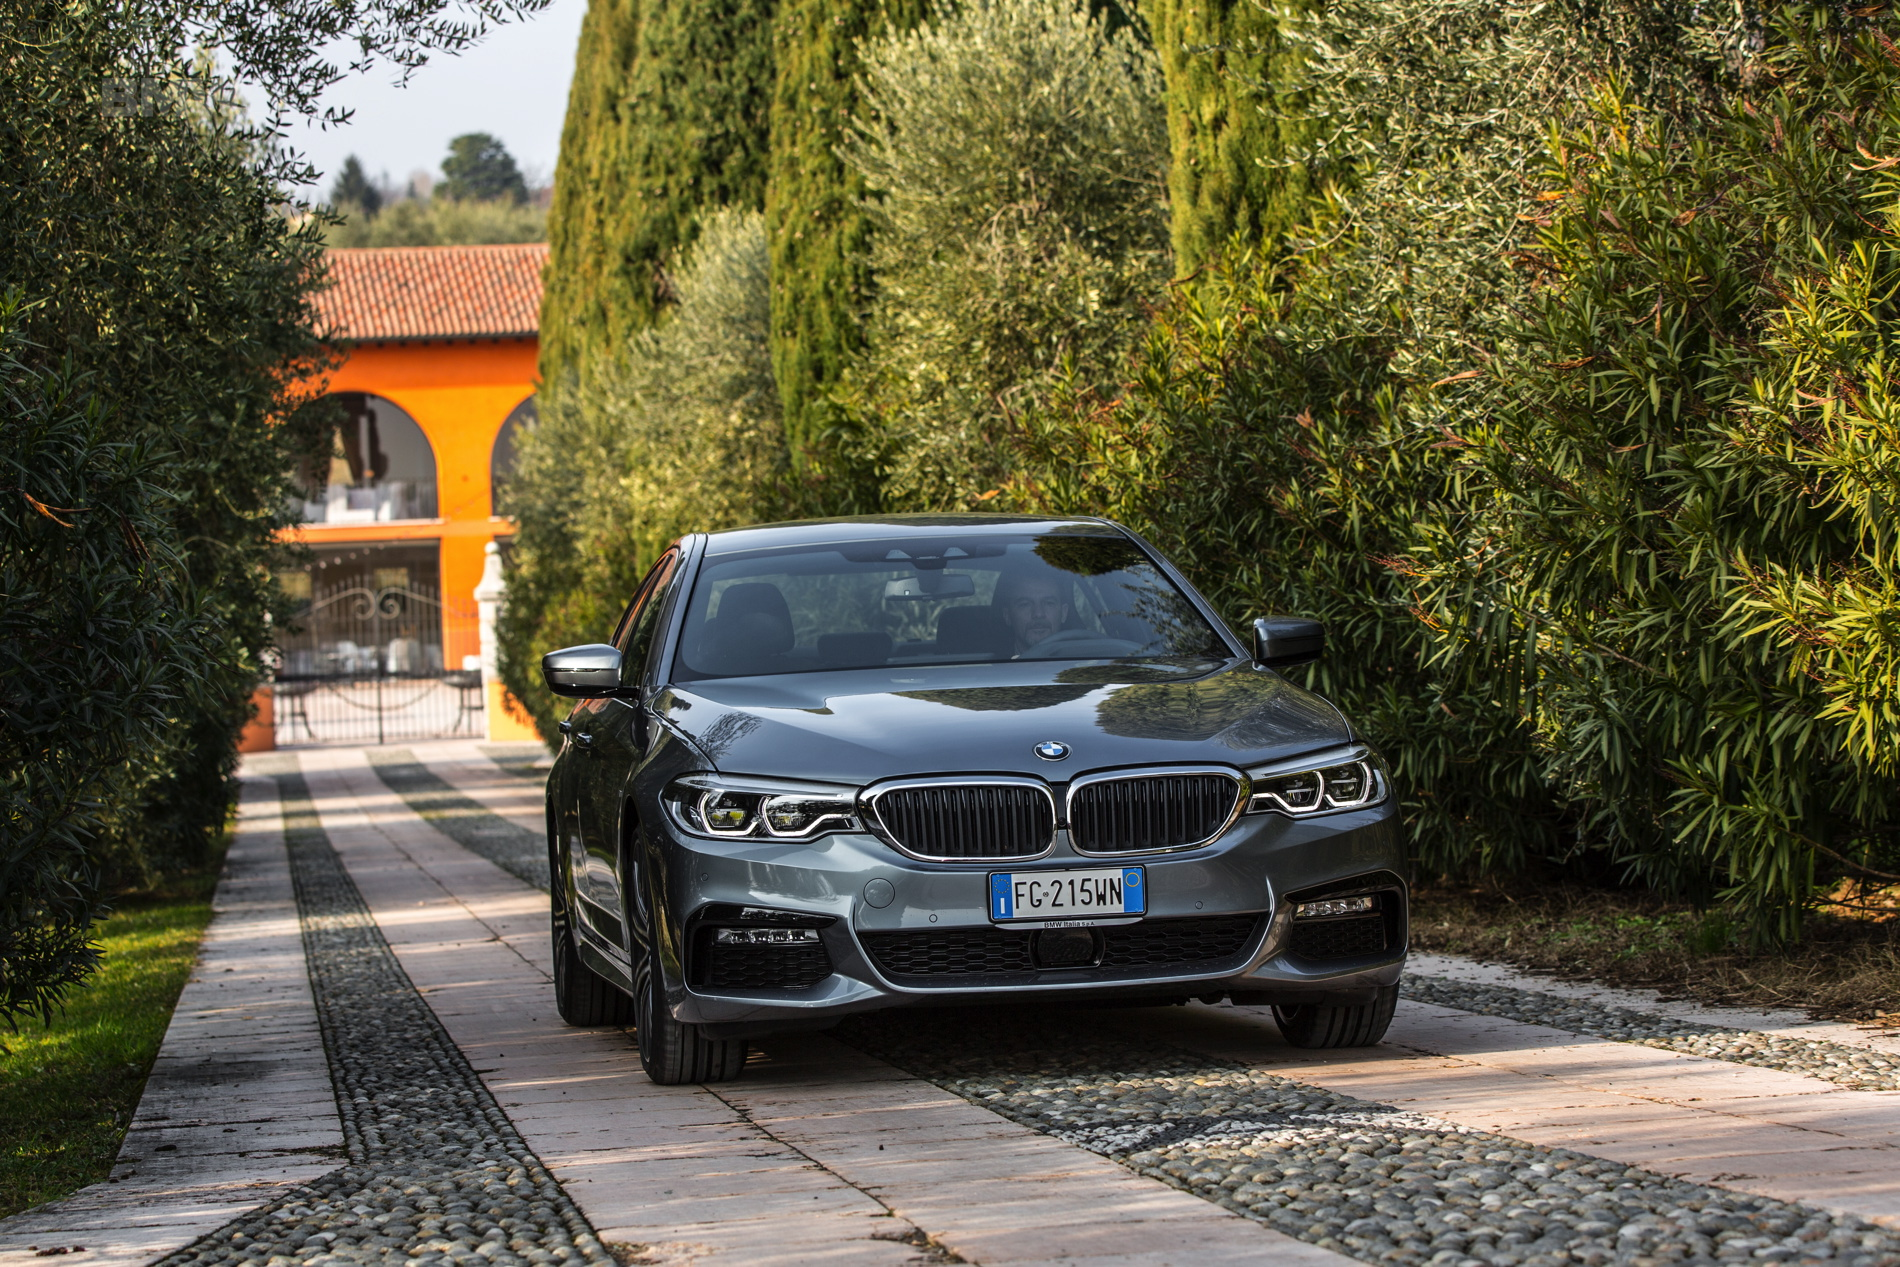 2017 BMW 5 Series Italy 41